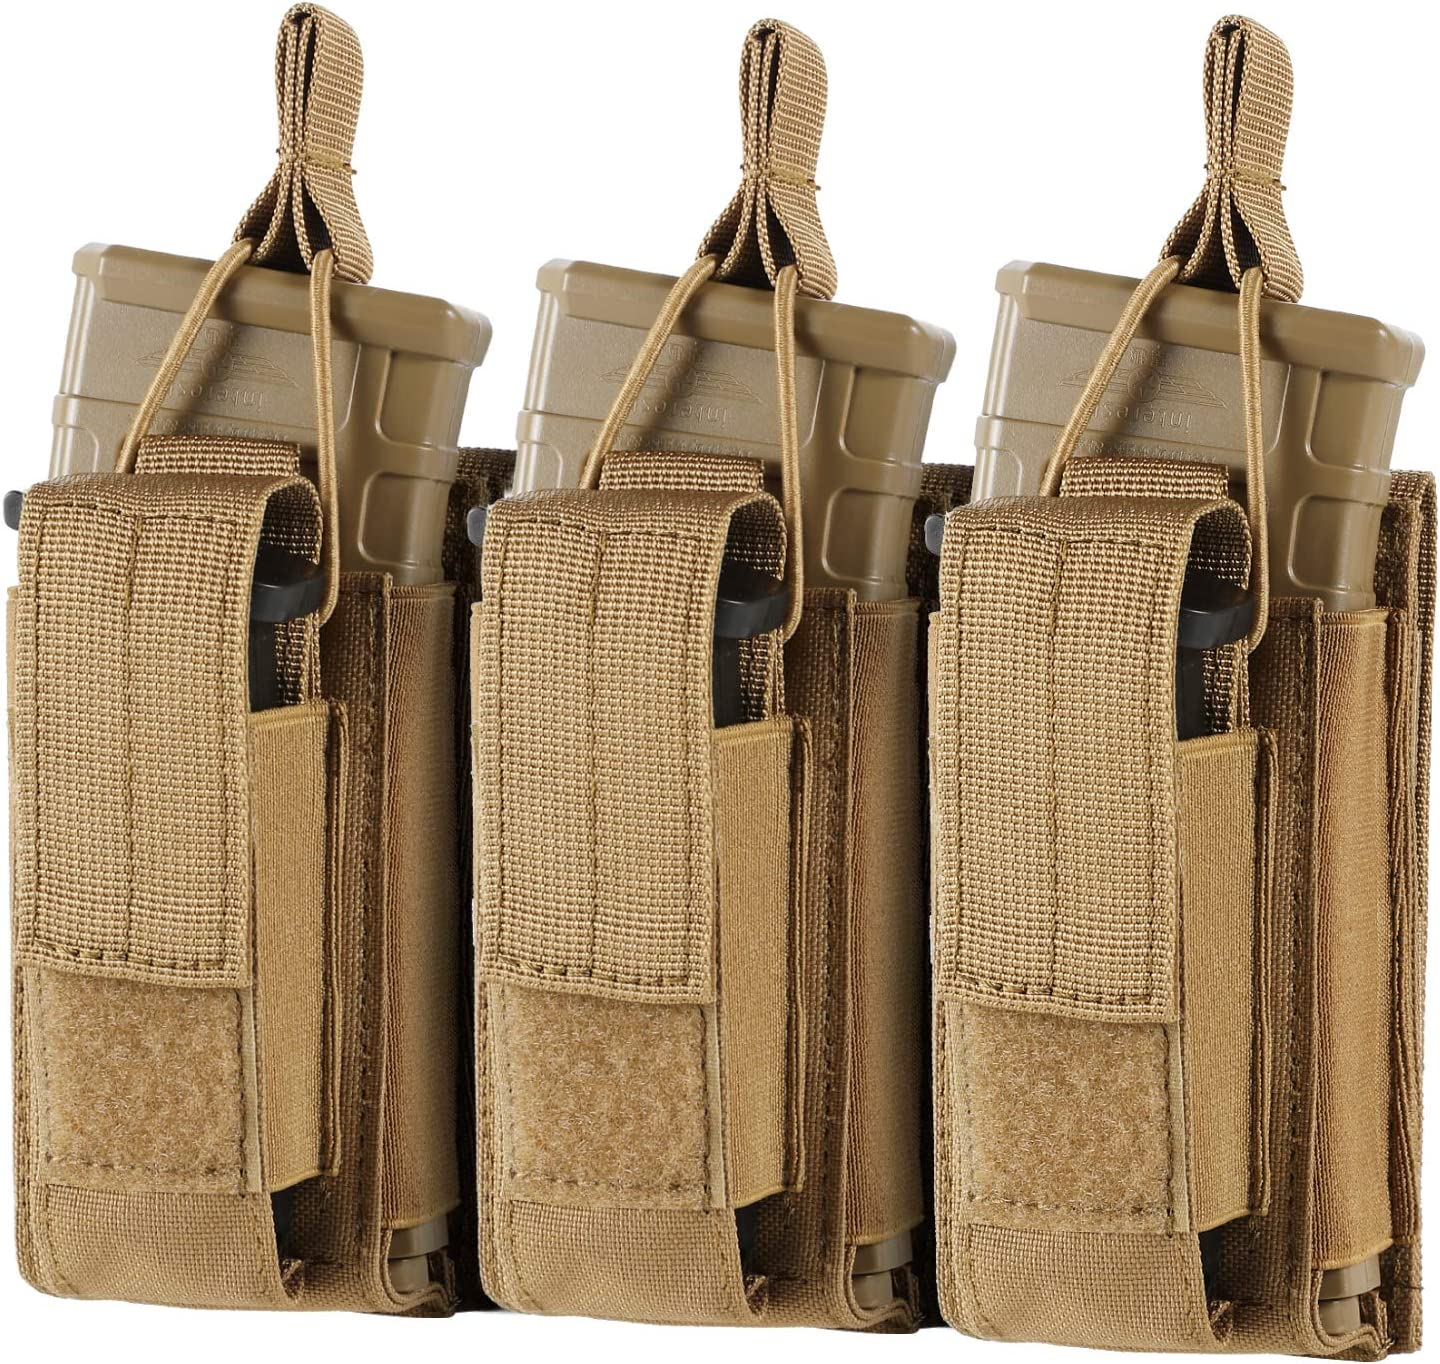 FRTKK 2021 spring and summer new Molle Mag Pouch Open Top Double Po Single Triple sale Magazine